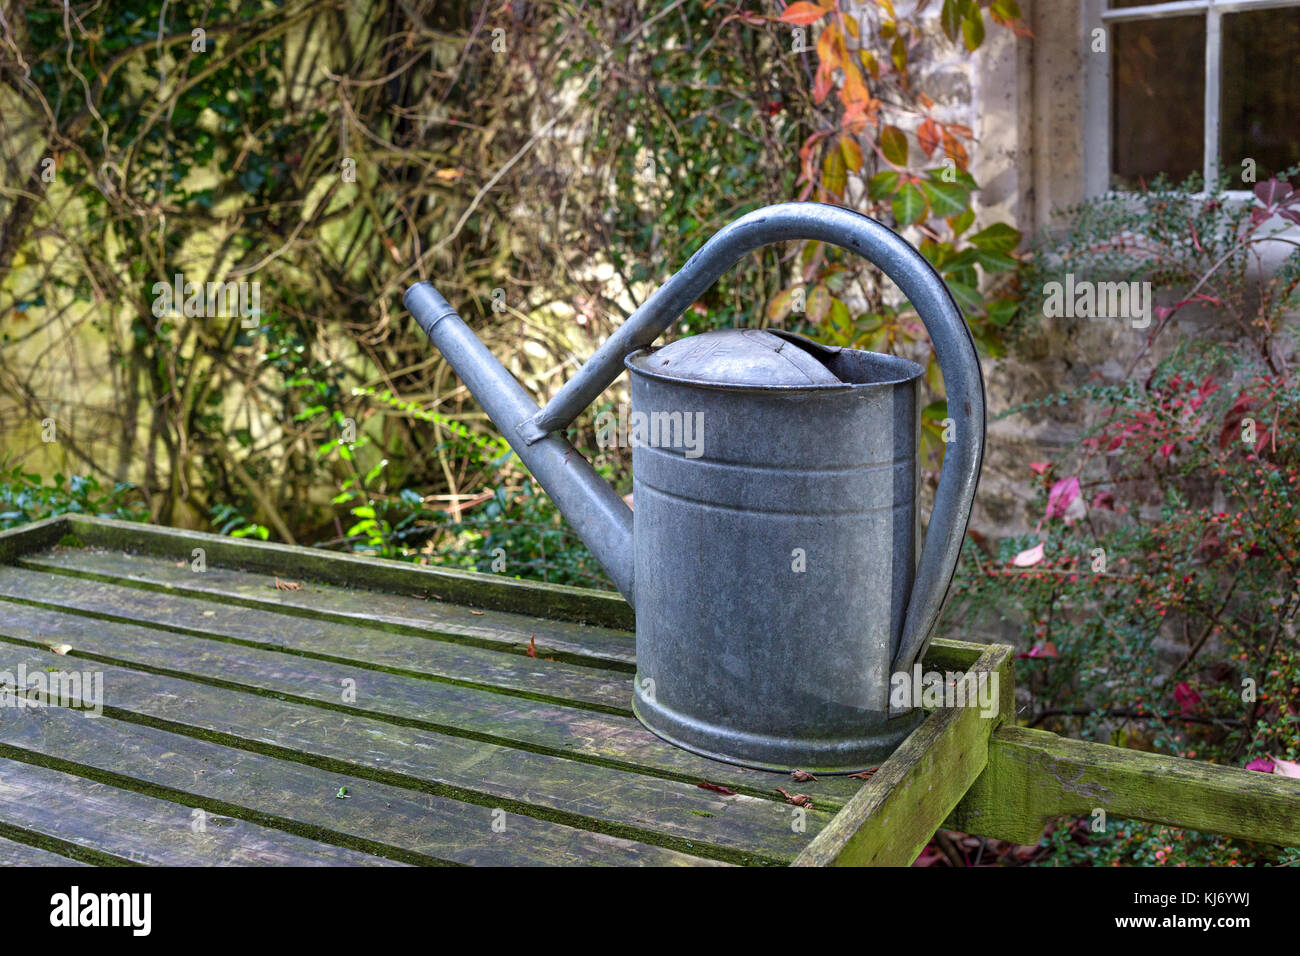 Old fashioned galvanized steel metal watering can - Stock Image